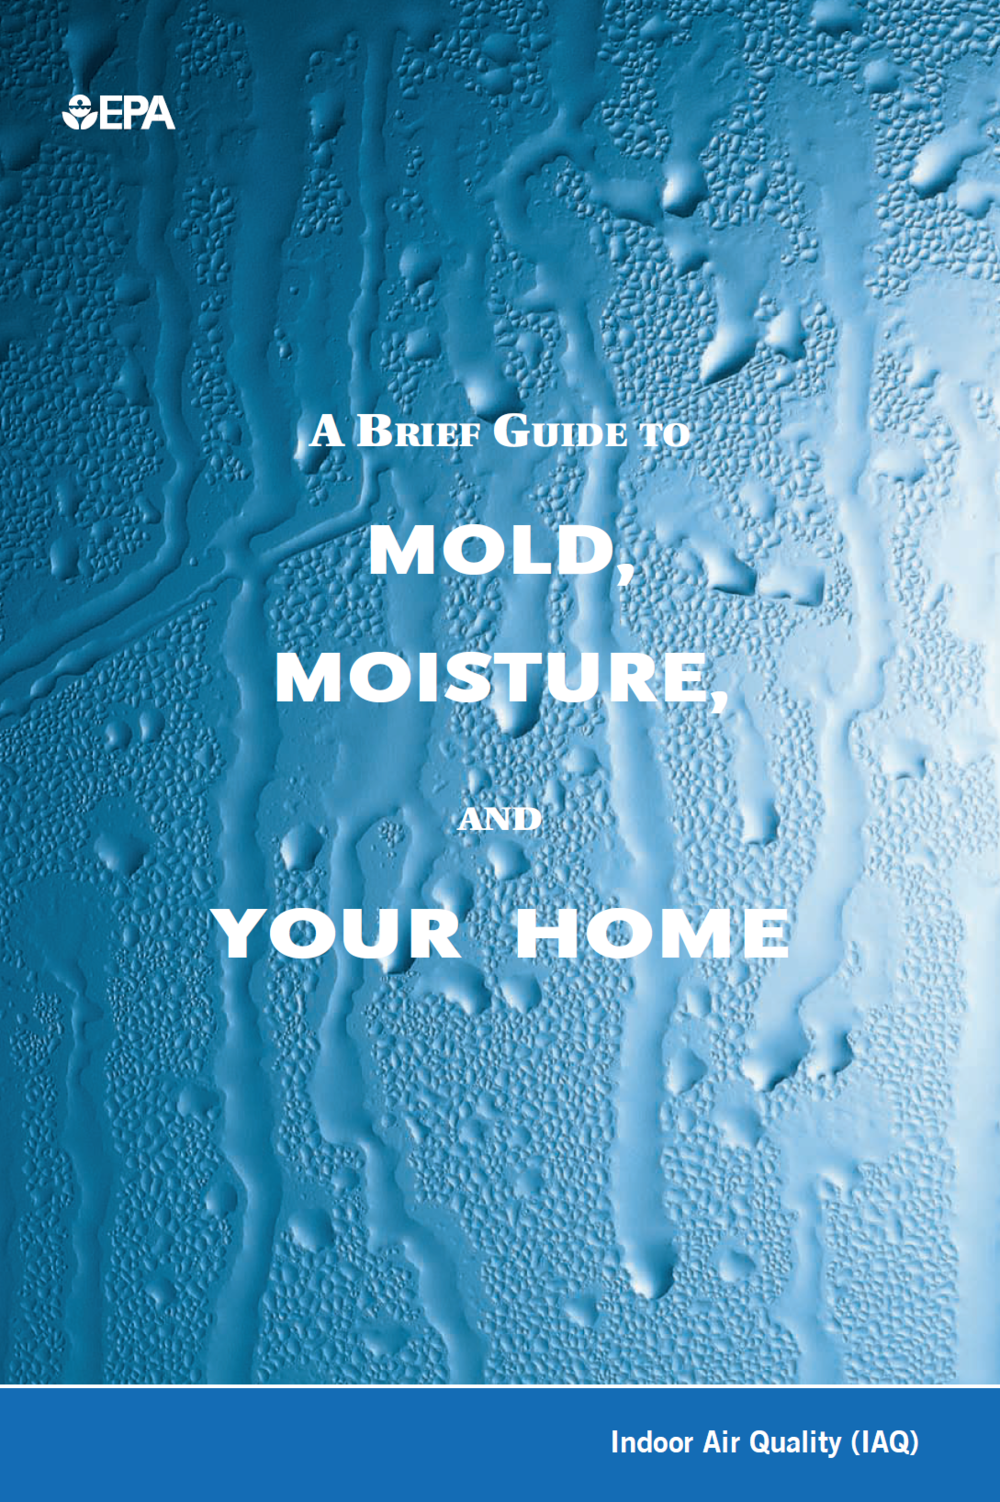 Offering mold testing throughout the Valley. Click here to download a free booklet on how to control moisture in your home. #inspector #inspection #homeinspection #homeinspector #certifiedmasterinspector #phoenix #arizona #mold #infrared #radon #pools #hireonlythebest https://bit.ly/2S28L0p